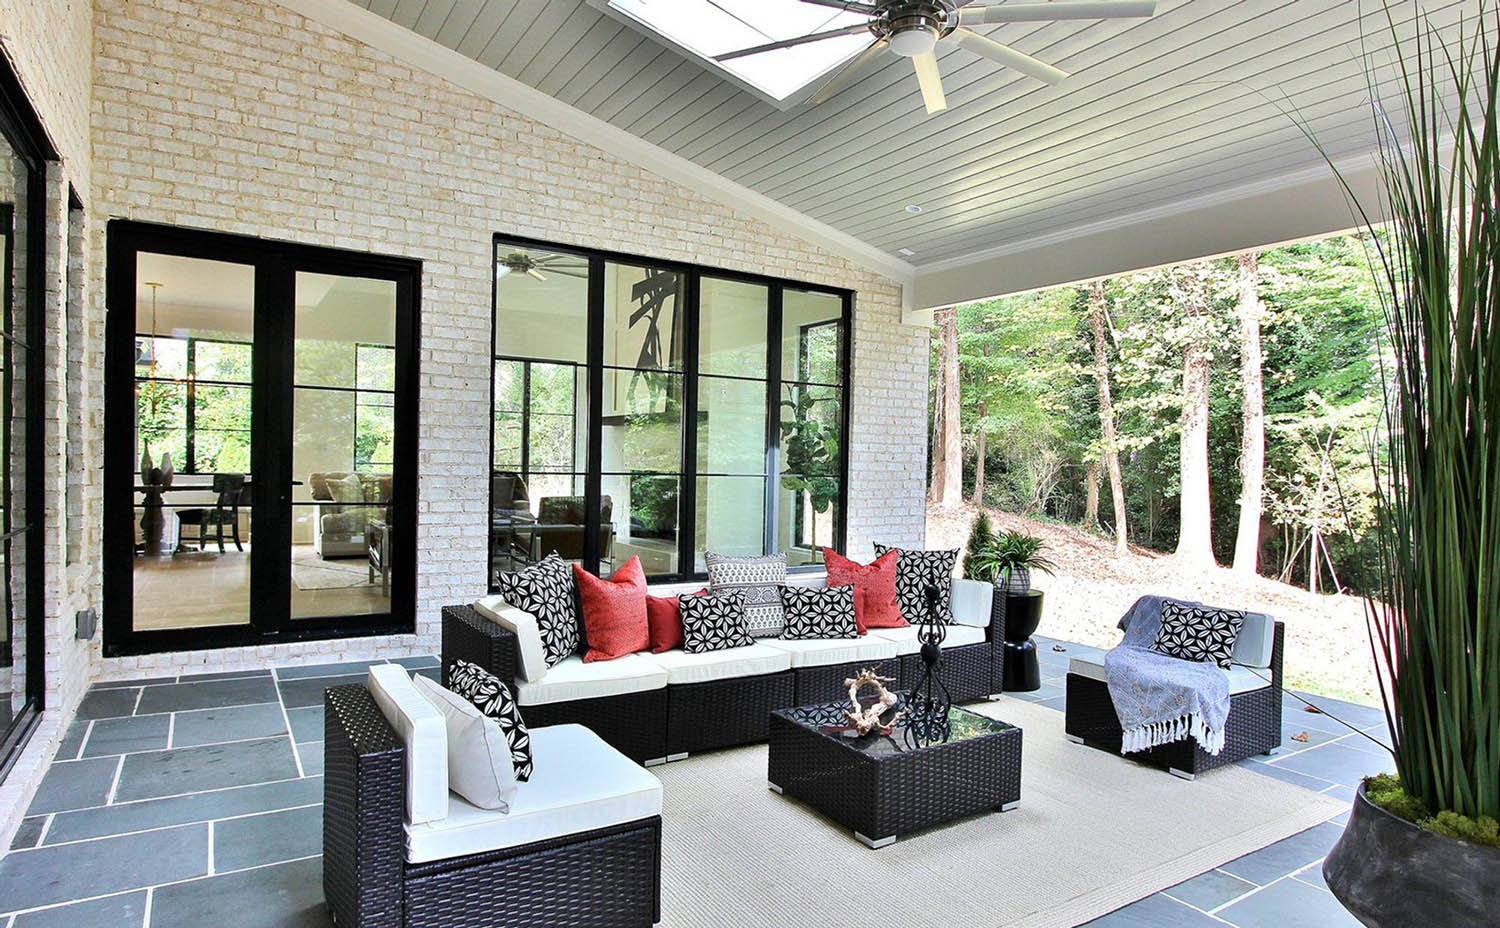 white brick wall with black framed windows and doors blue stone patio back porch